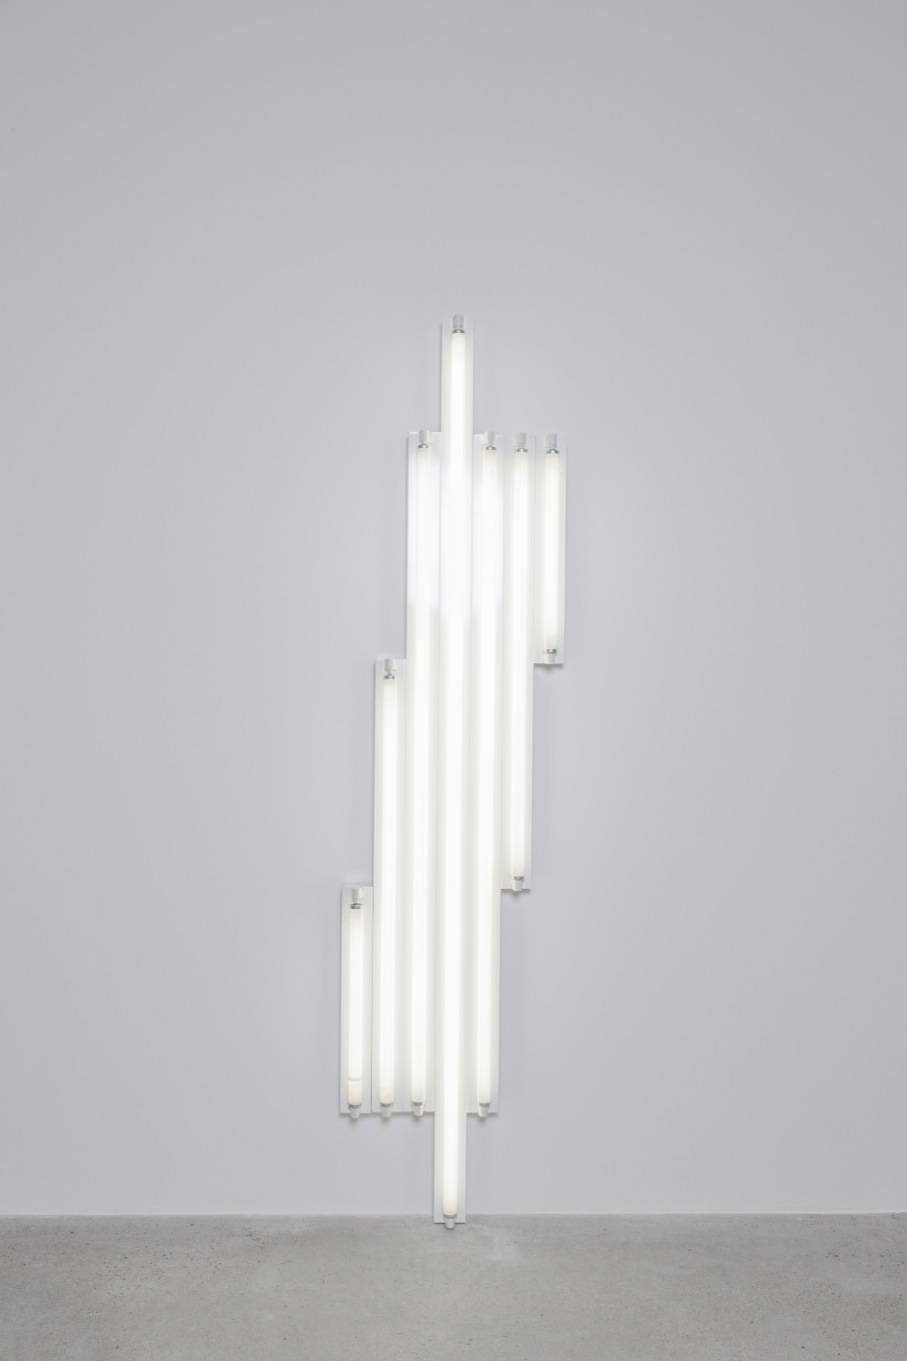 Dan Flavin, Monument for V. Tatlin, 1967. Cool white fluorescent lights 244 x 57,5 x 12 cm (96 x 22,5 x 5 in) © Stephen Flavin / ADAGP, Paris, 2018. Courtesy Galerie Thaddaeus Ropac, London · Paris · Salzburg